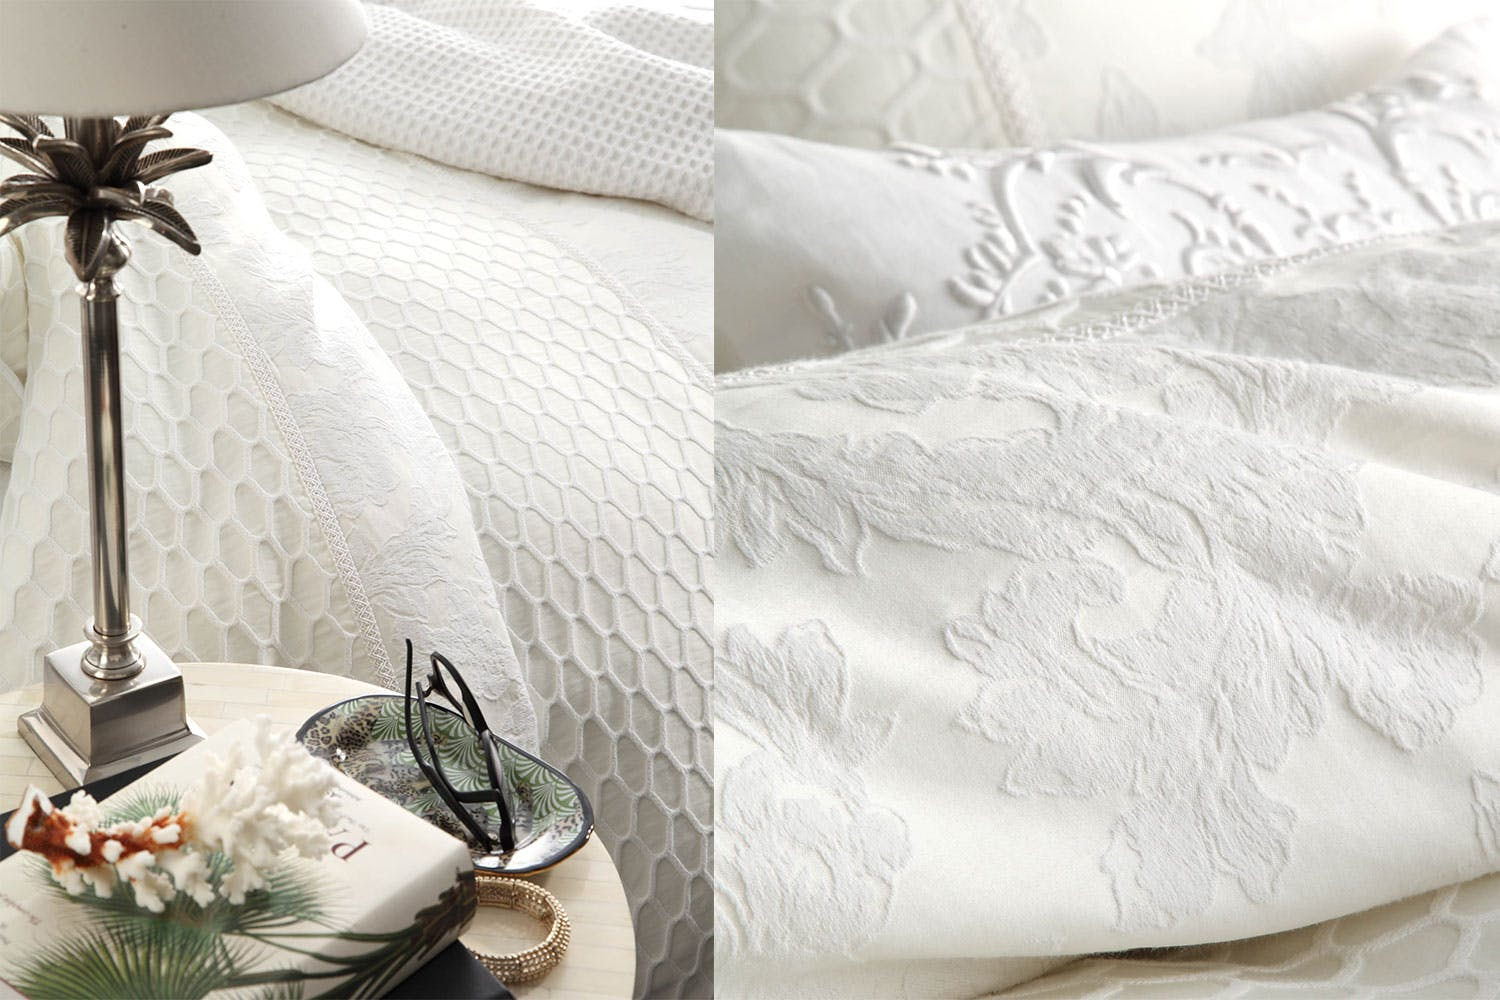 p linen washedlinenivoryquilt bedding quilt cone ivory pine product list hill washed zoom duvet